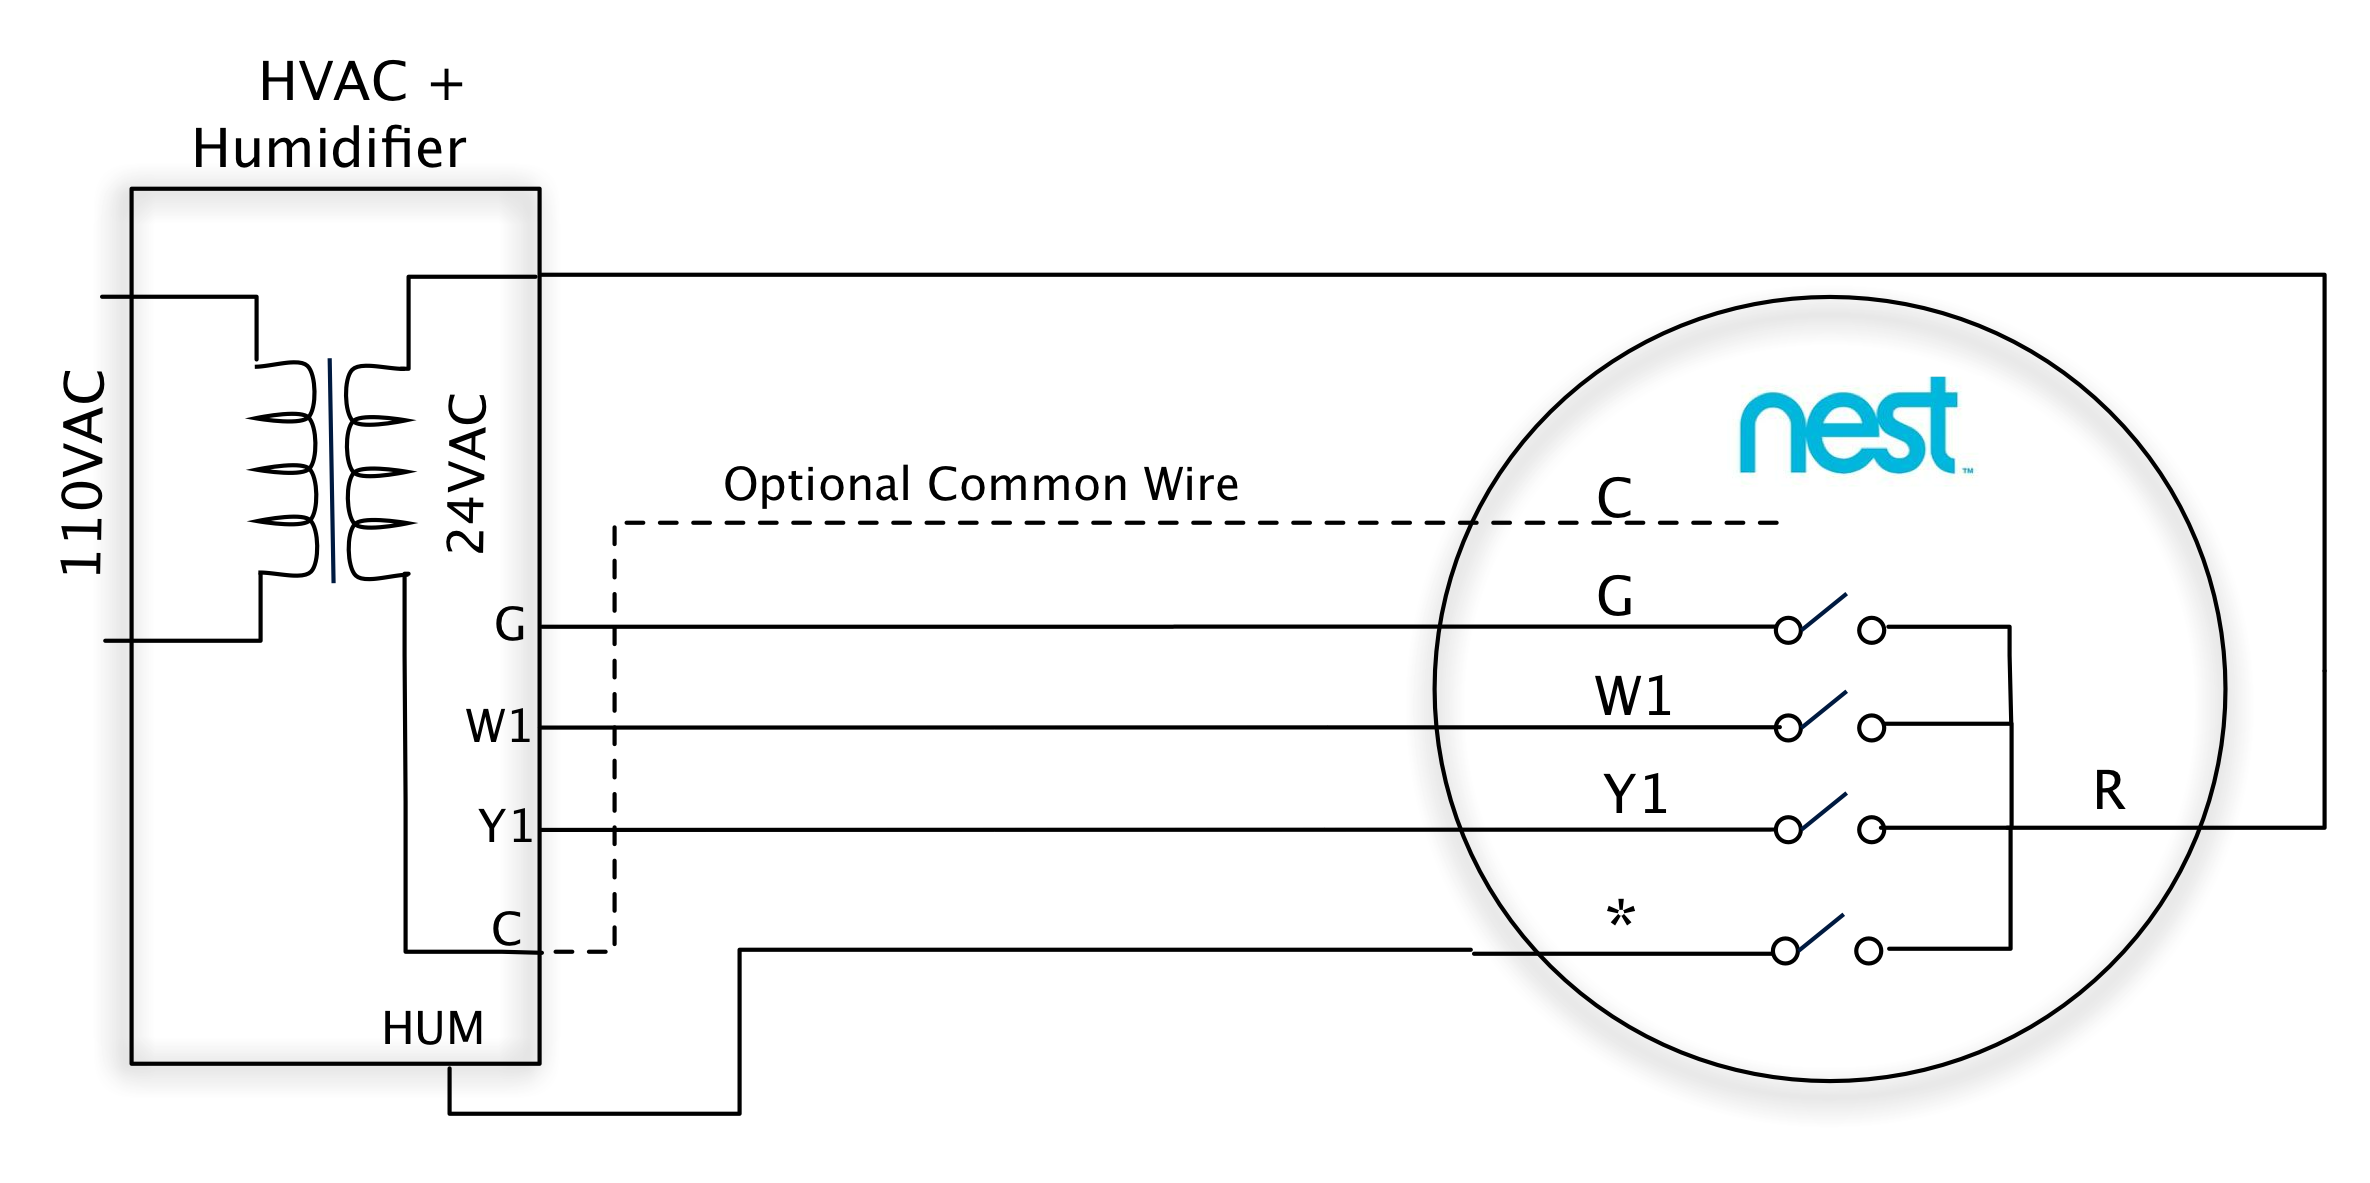 wiring diagram for a nest thermostat wiring wiring diagrams back to